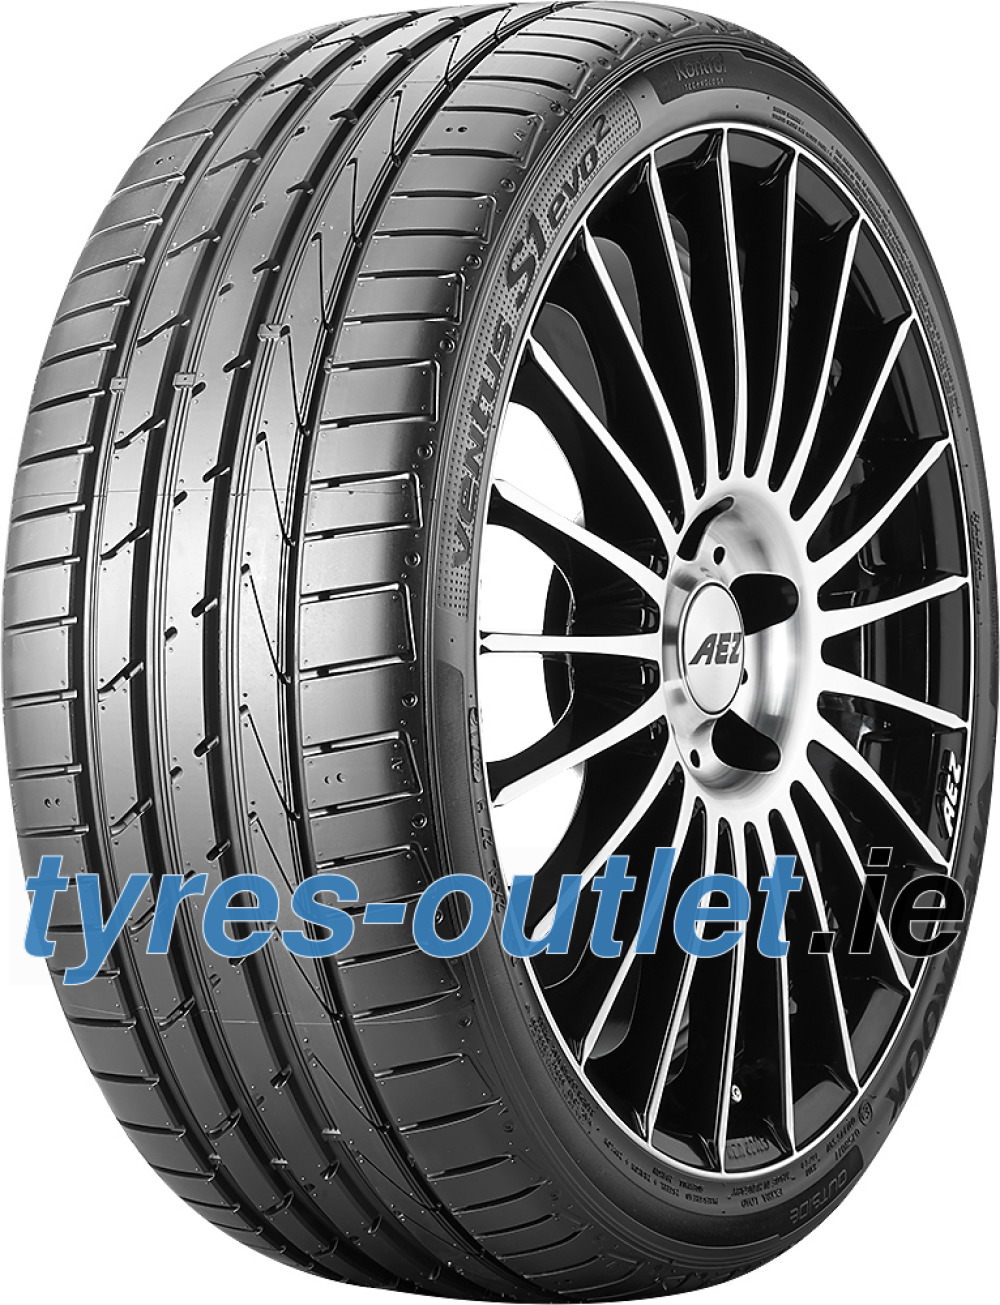 Hankook Ventus S1 Evo 2 K117 ( 265/35 ZR19 98Y XL with rim protection (MFS) SBL )